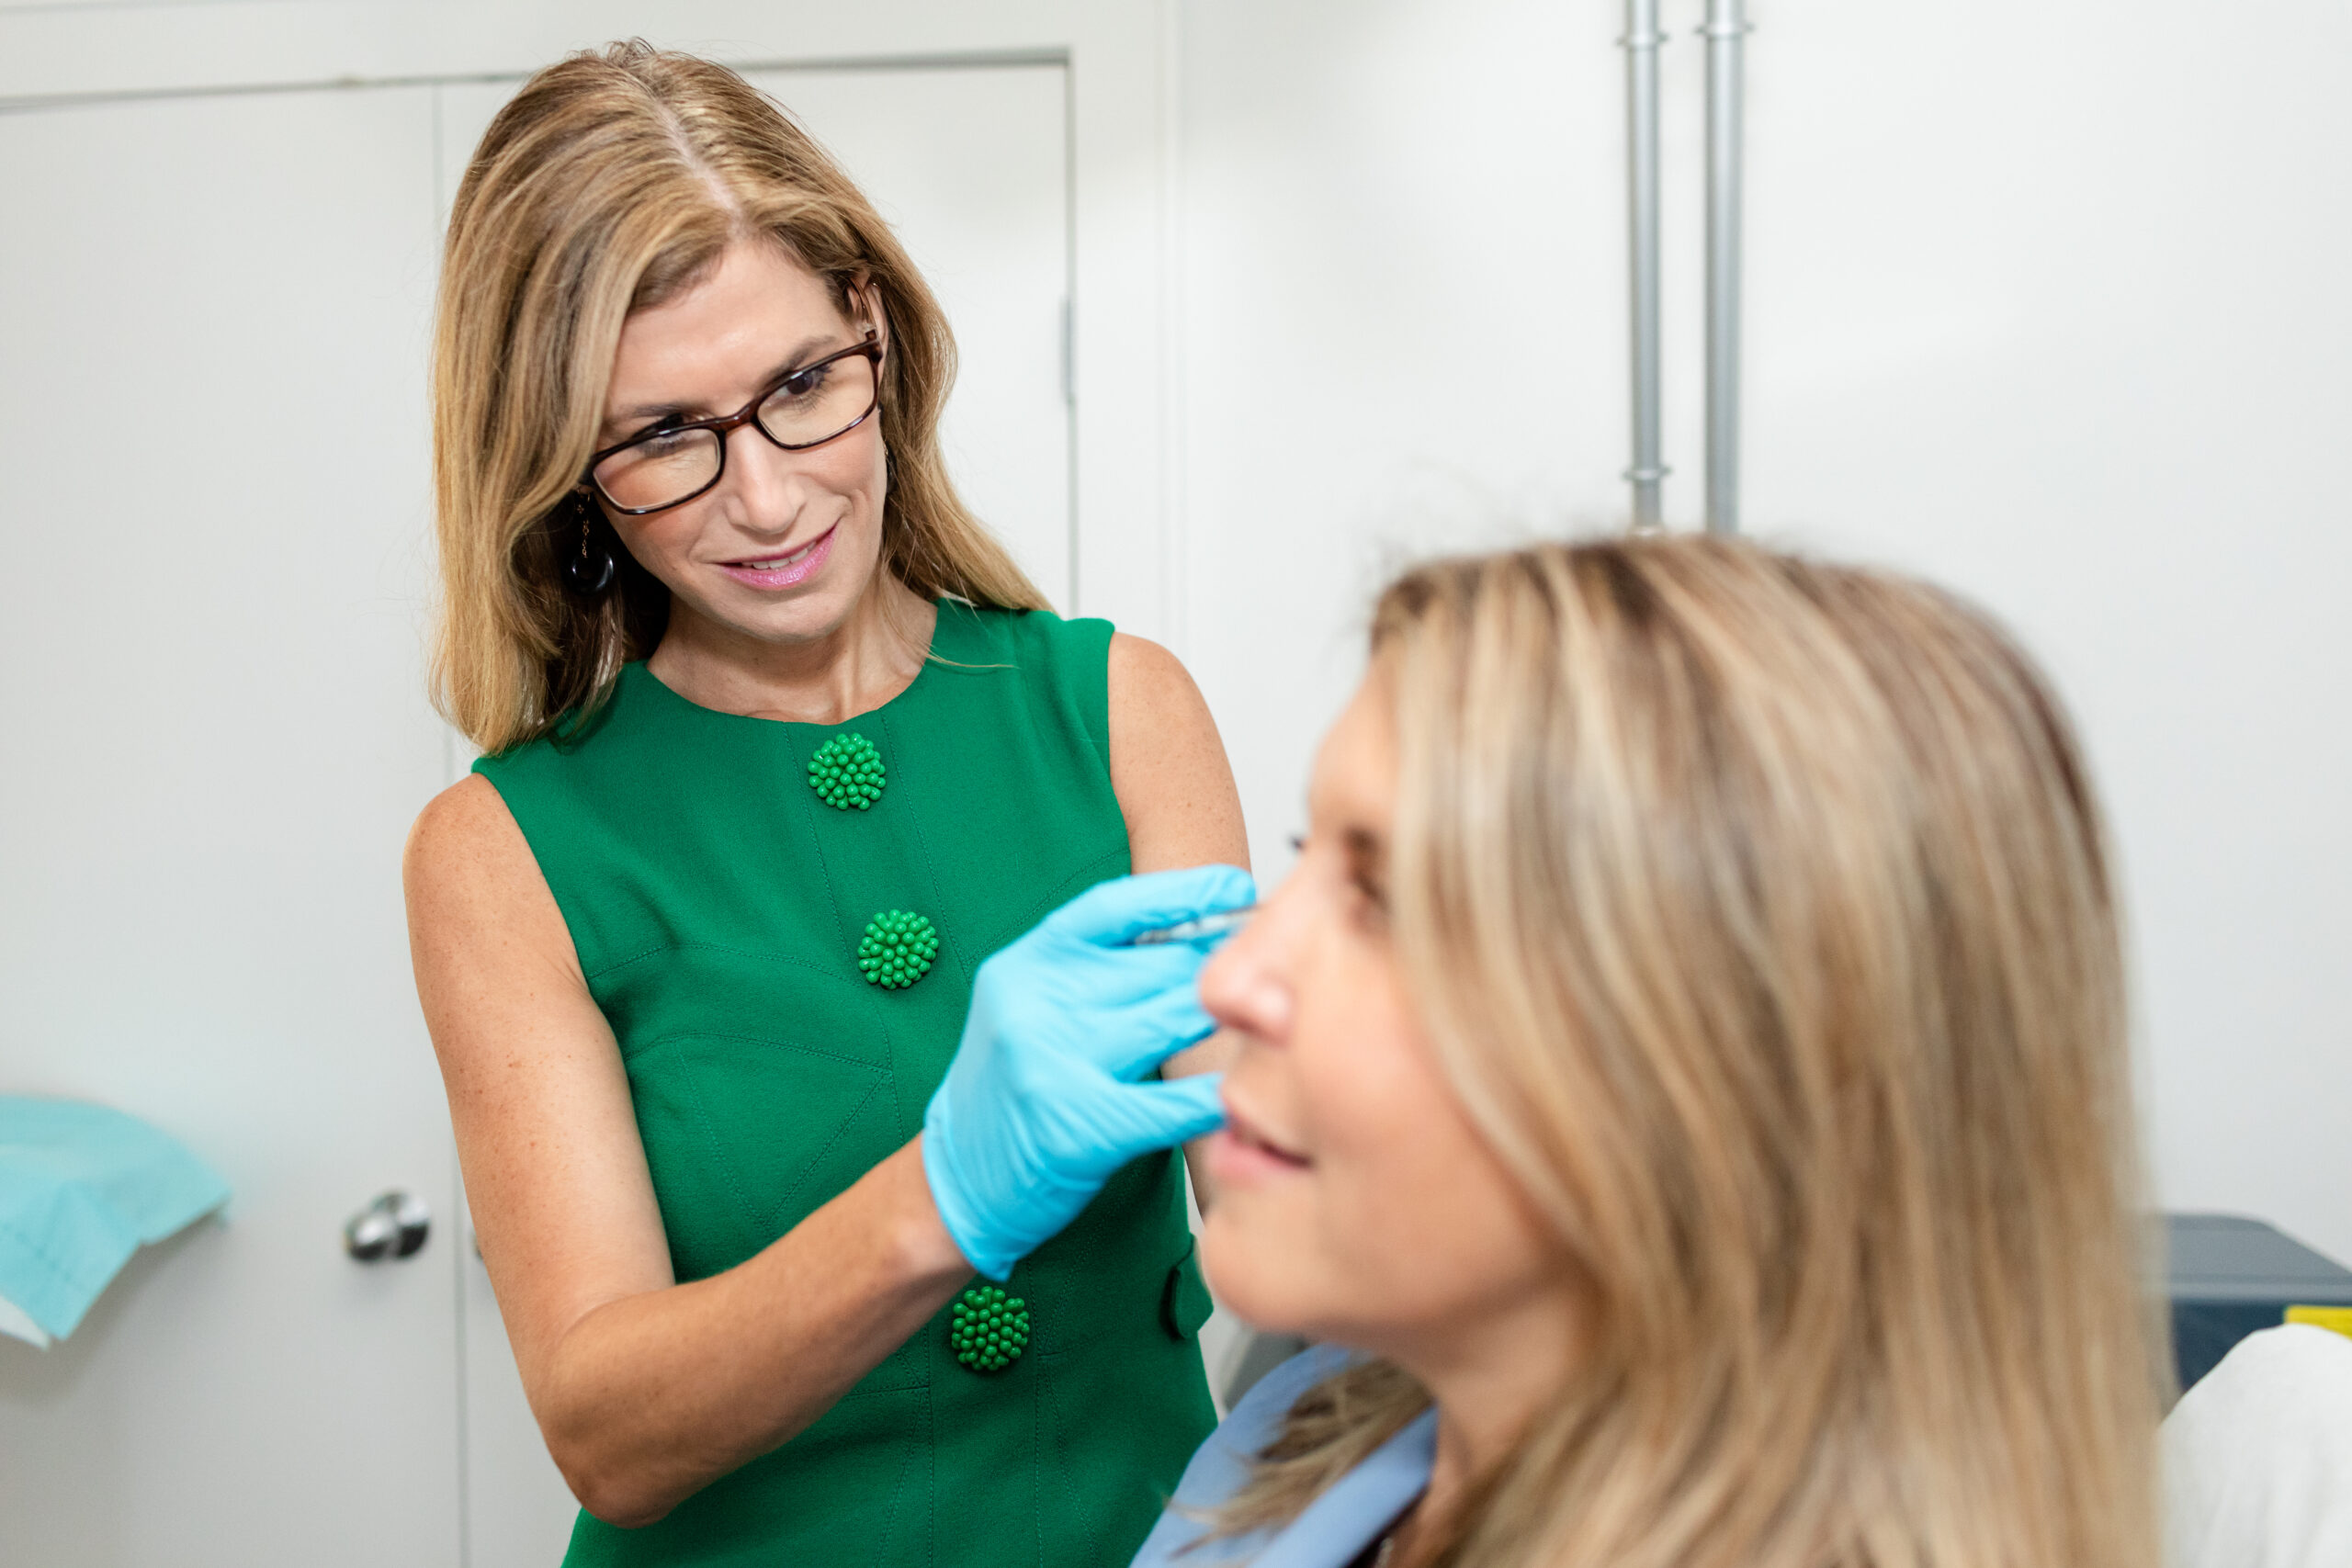 dr-stern-treating-female-patient-injectable